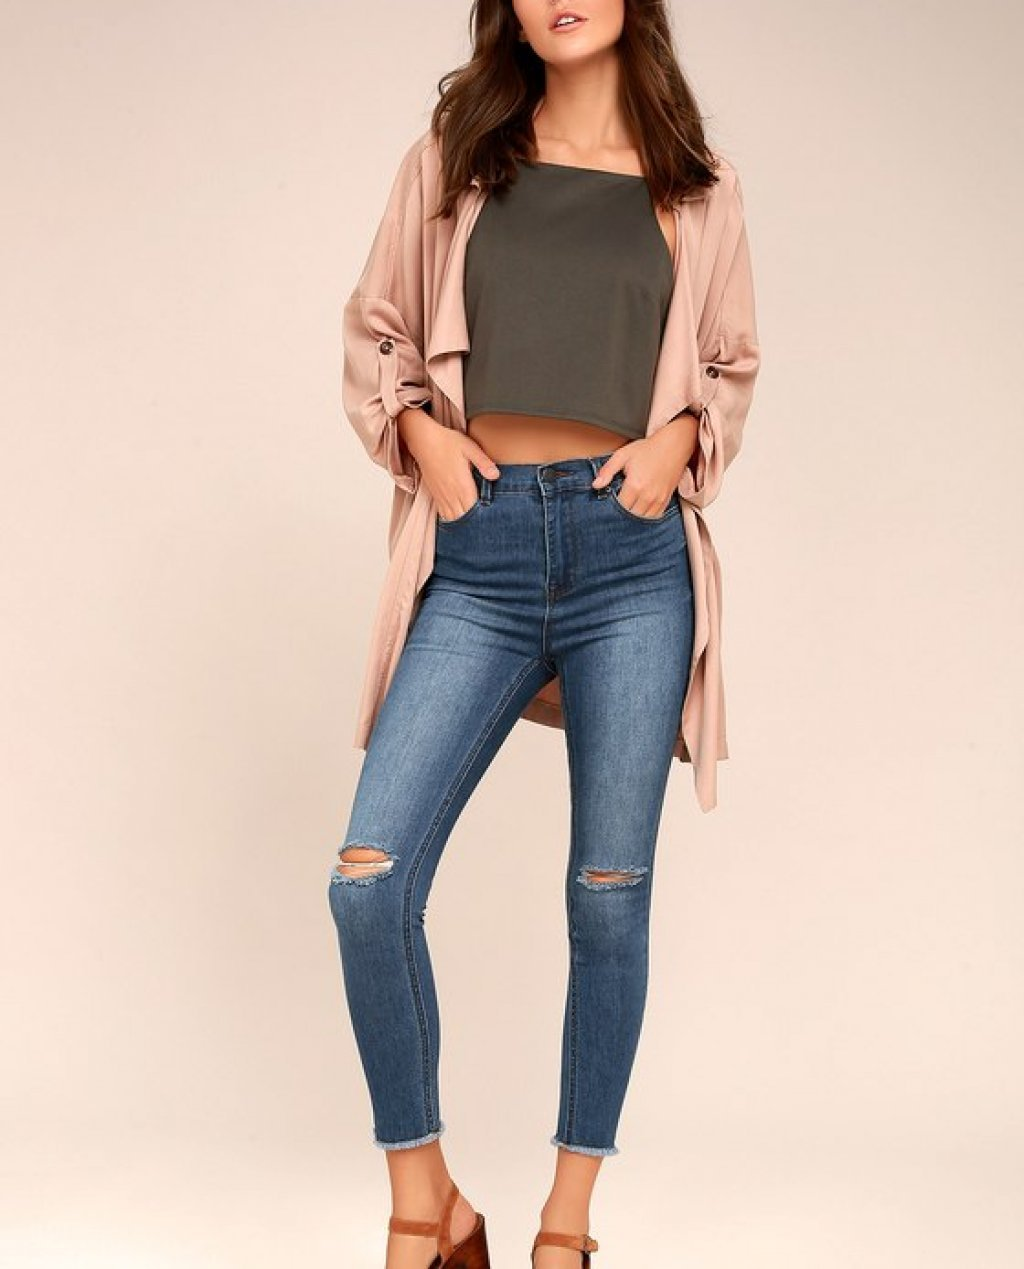 Friends Forever Medium Wash High-Waisted Distressed Skinny Jeans